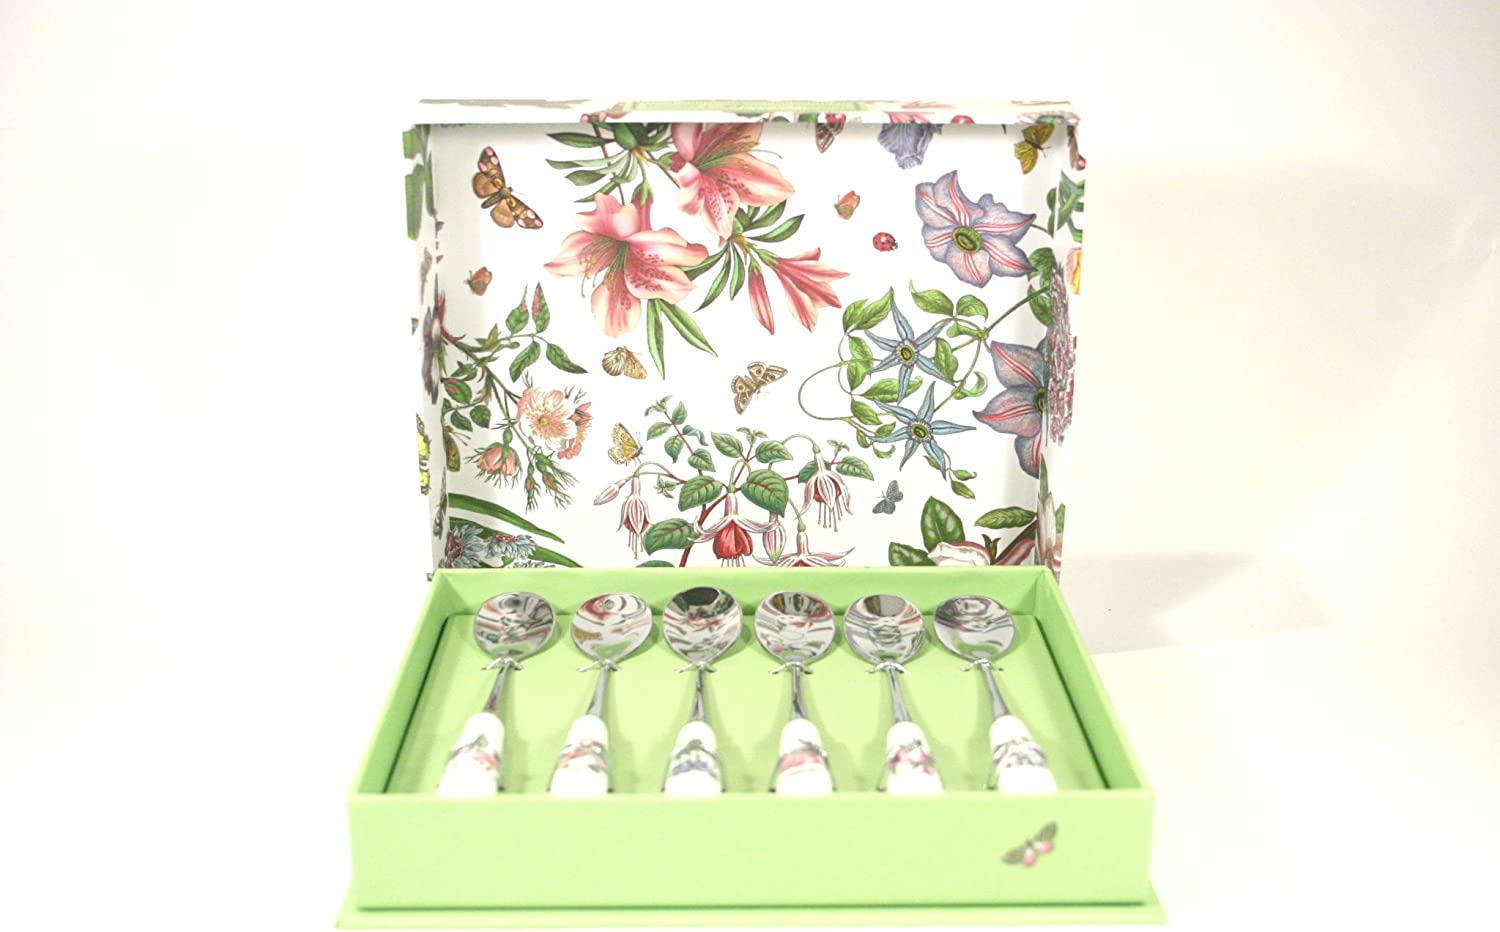 Portmeirion Botanic Garden Cutlery Tea Spoons - Set of 6